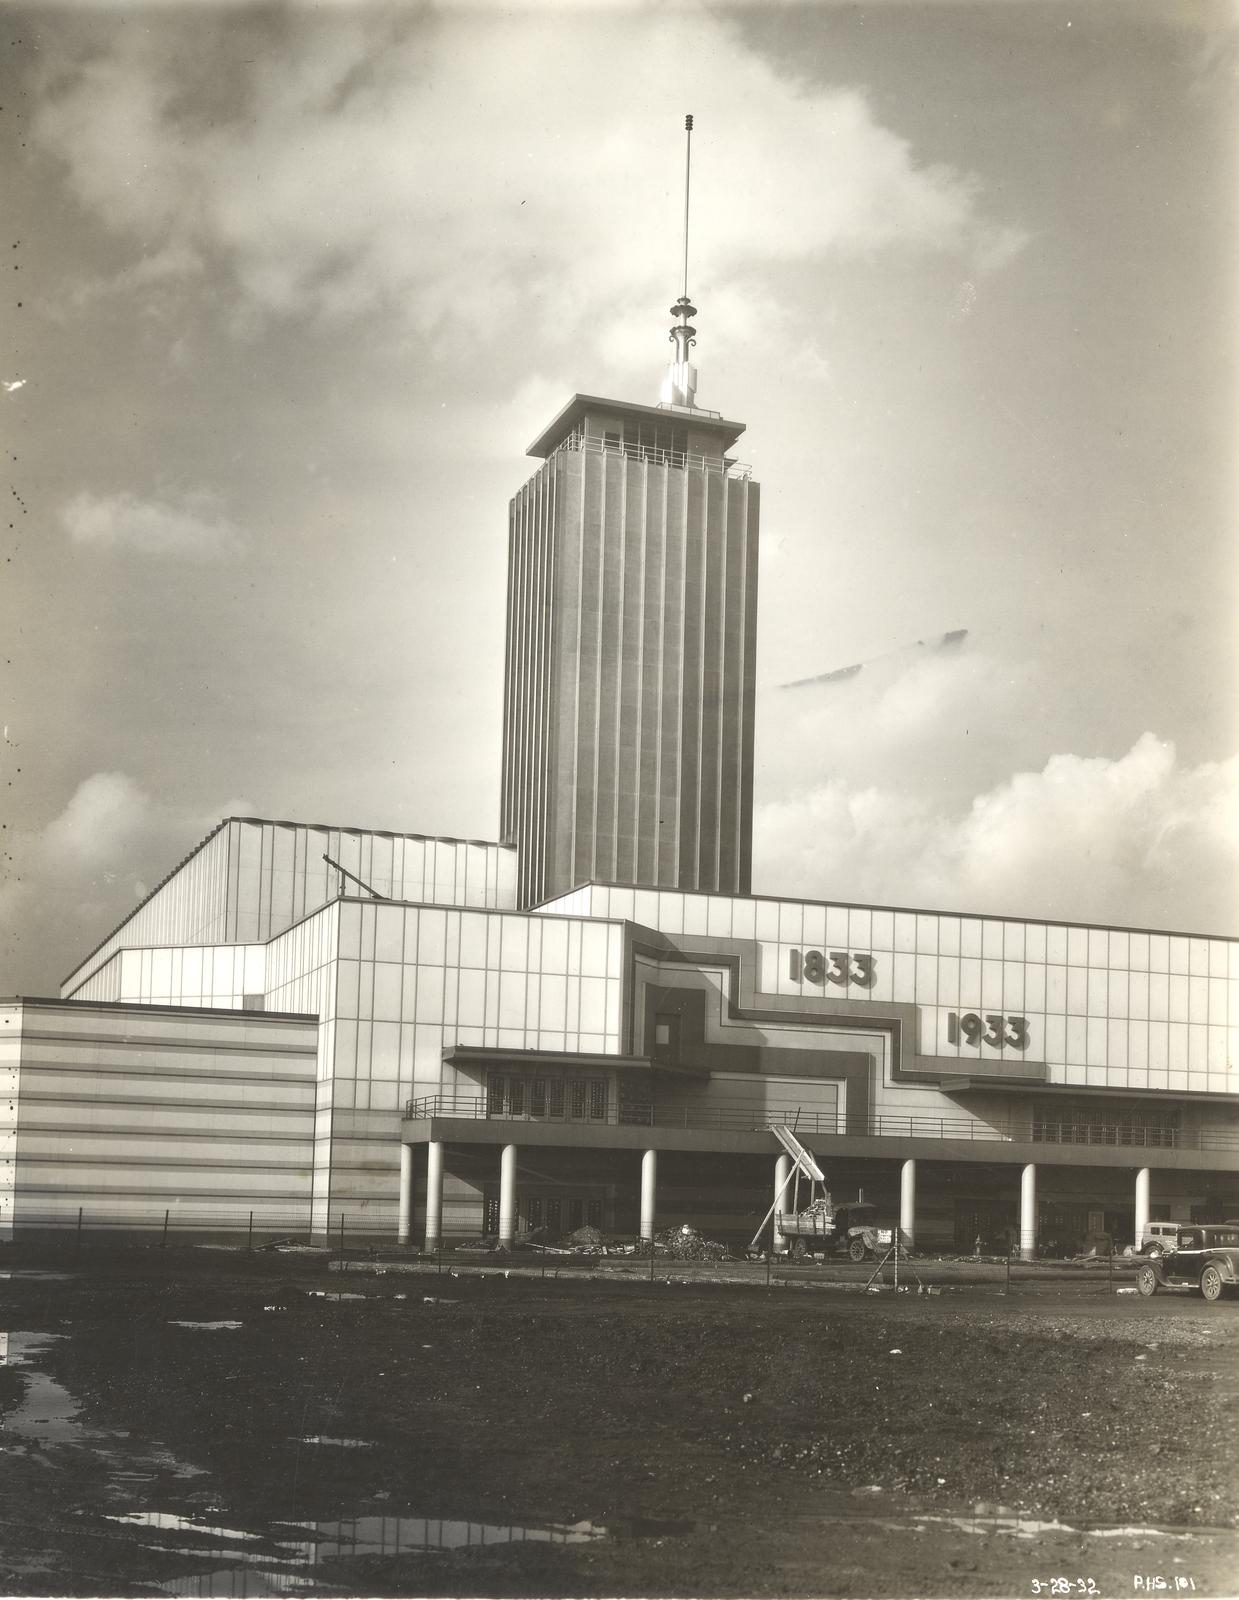 [The construction of the Hall of Science building in preparation for the Century of Progress International Exposition, 1933-1934.]